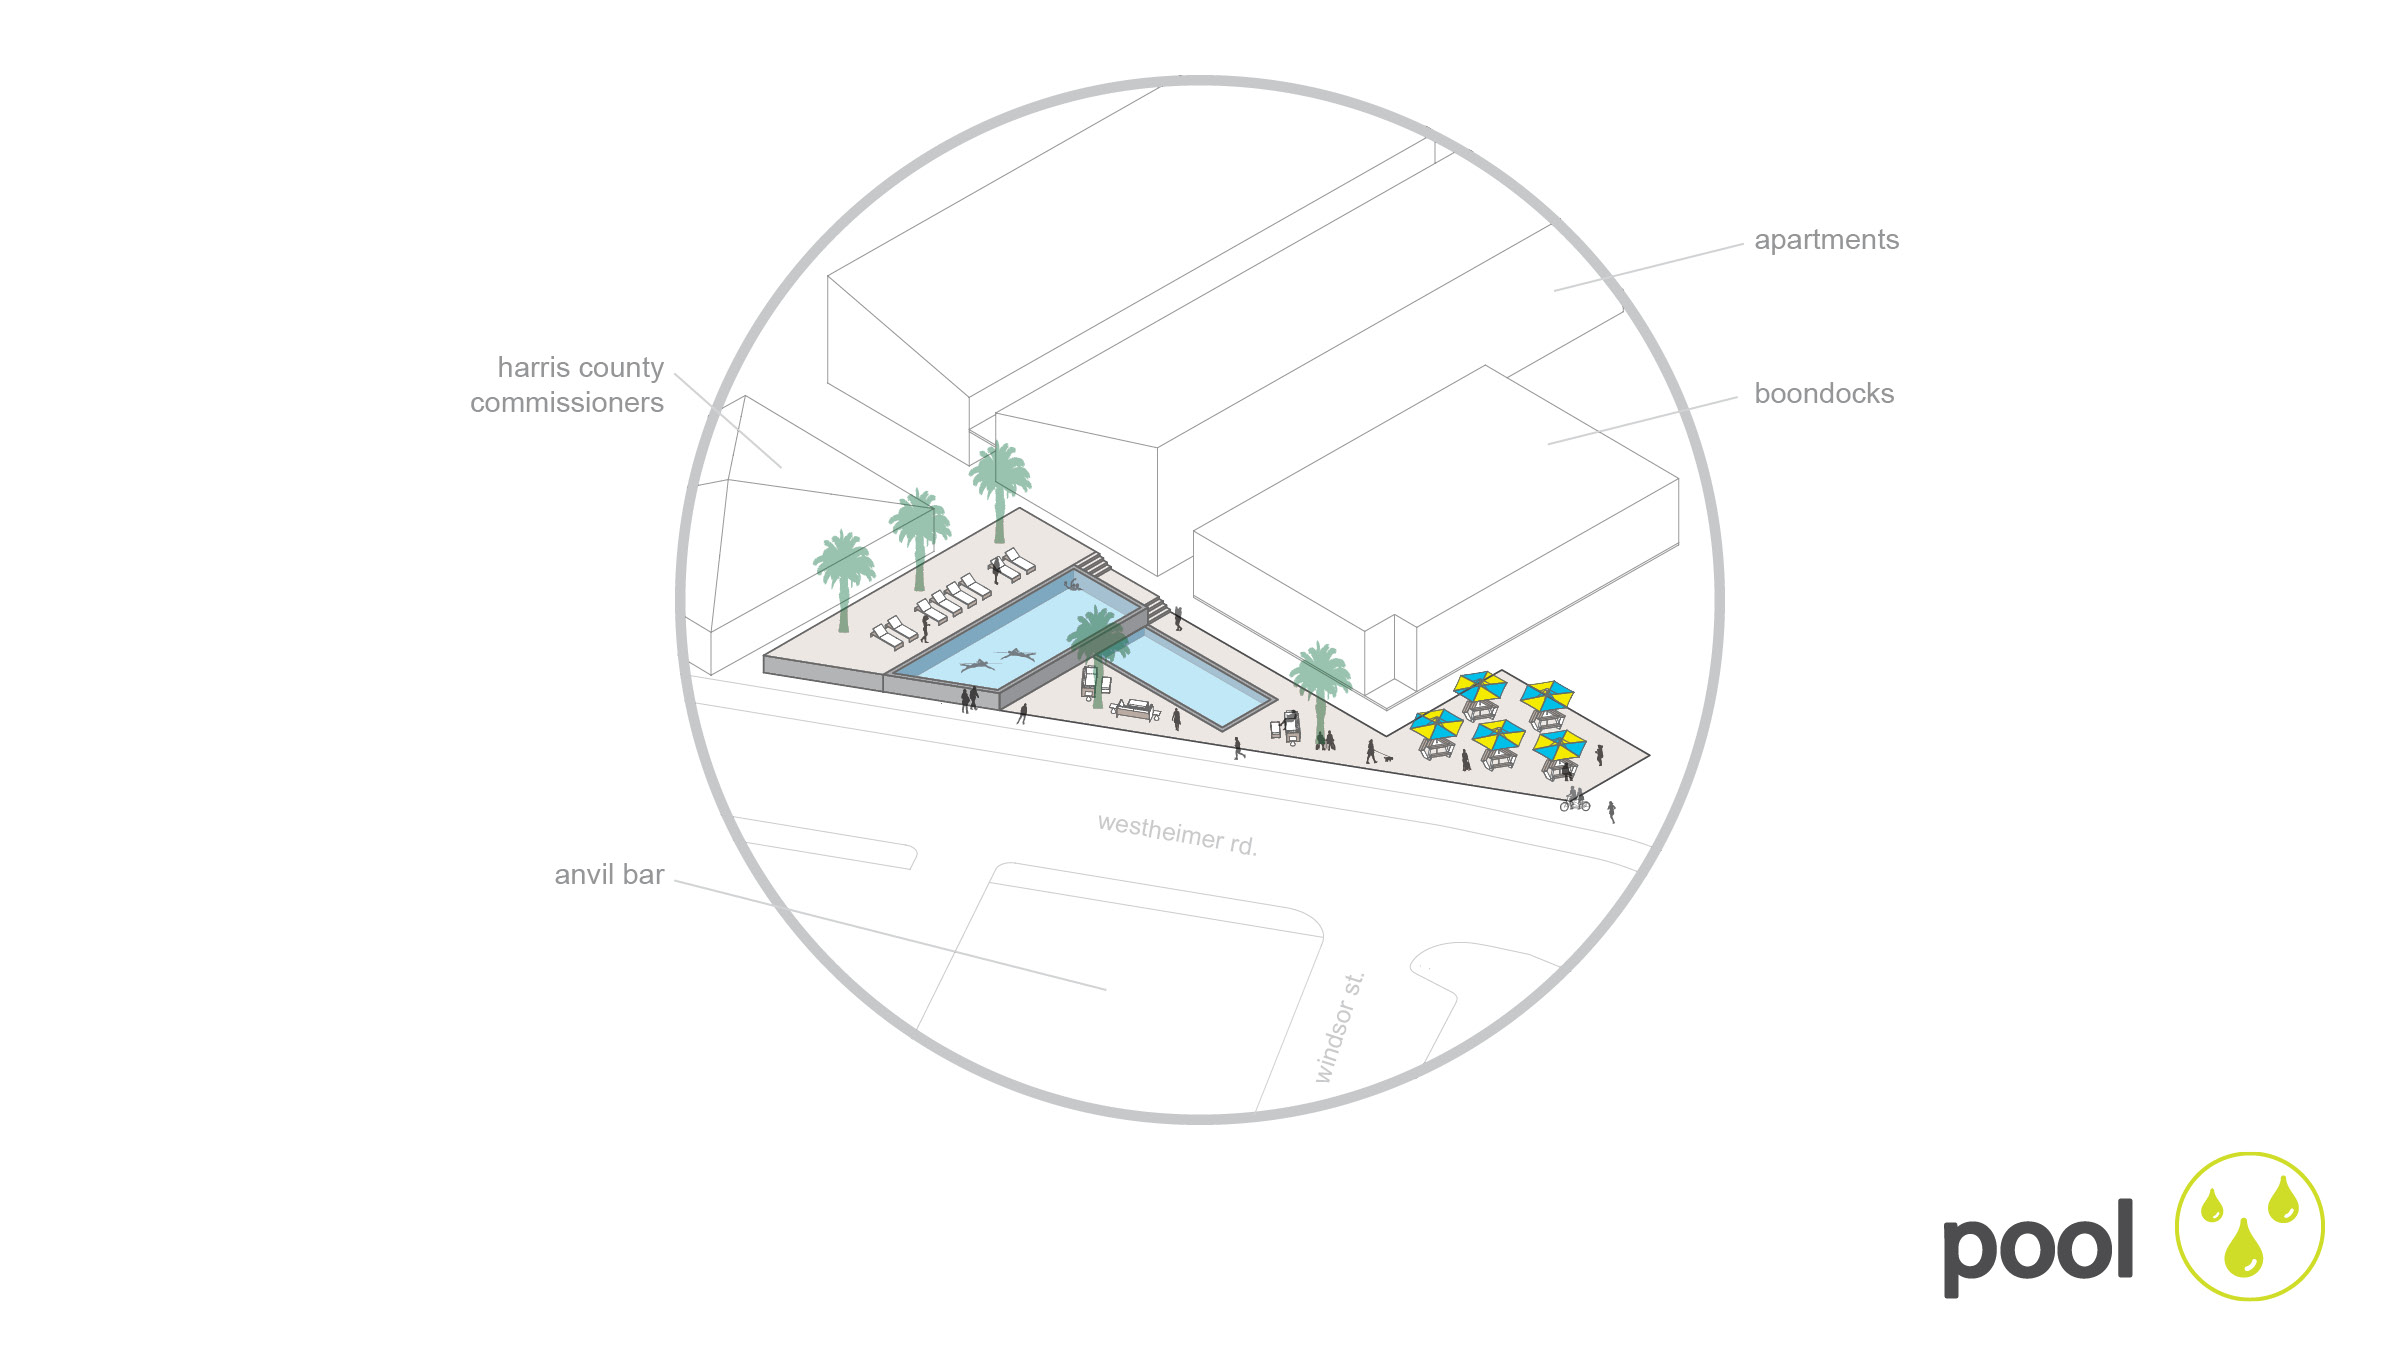 public pools are scarce in Houston, and the addition of a public pool near windsor st. will be servicing multiple vendors / residences